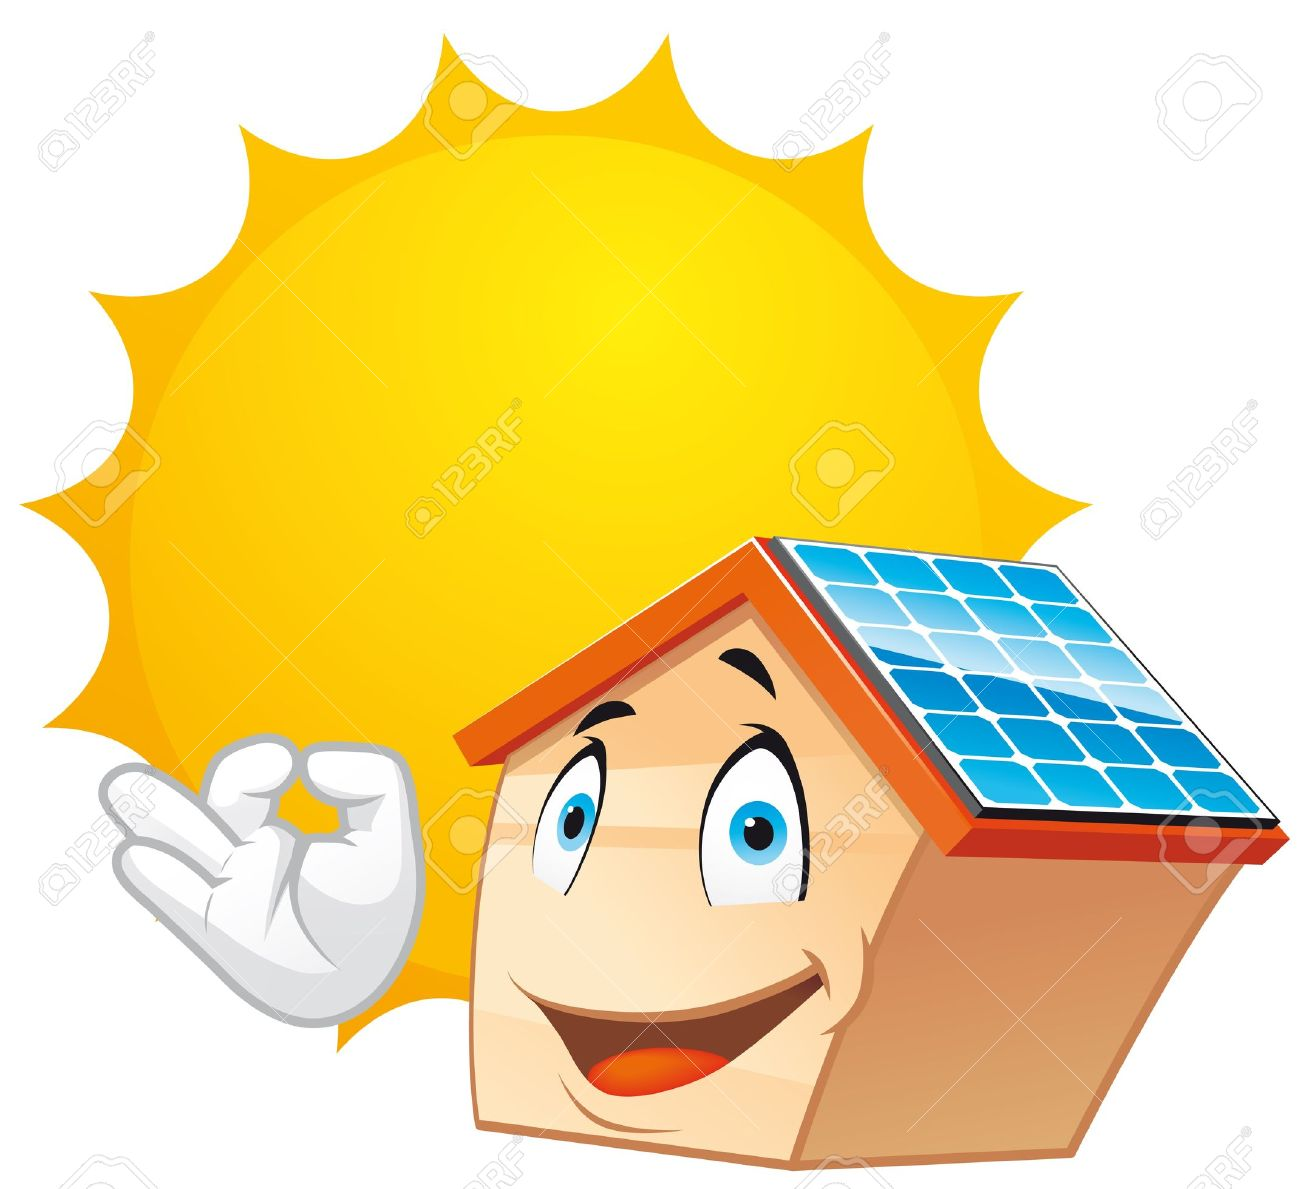 Energy clipart animations clip art free stock Download Solar Panel Gif Clipart | Free download best Download Solar ... clip art free stock